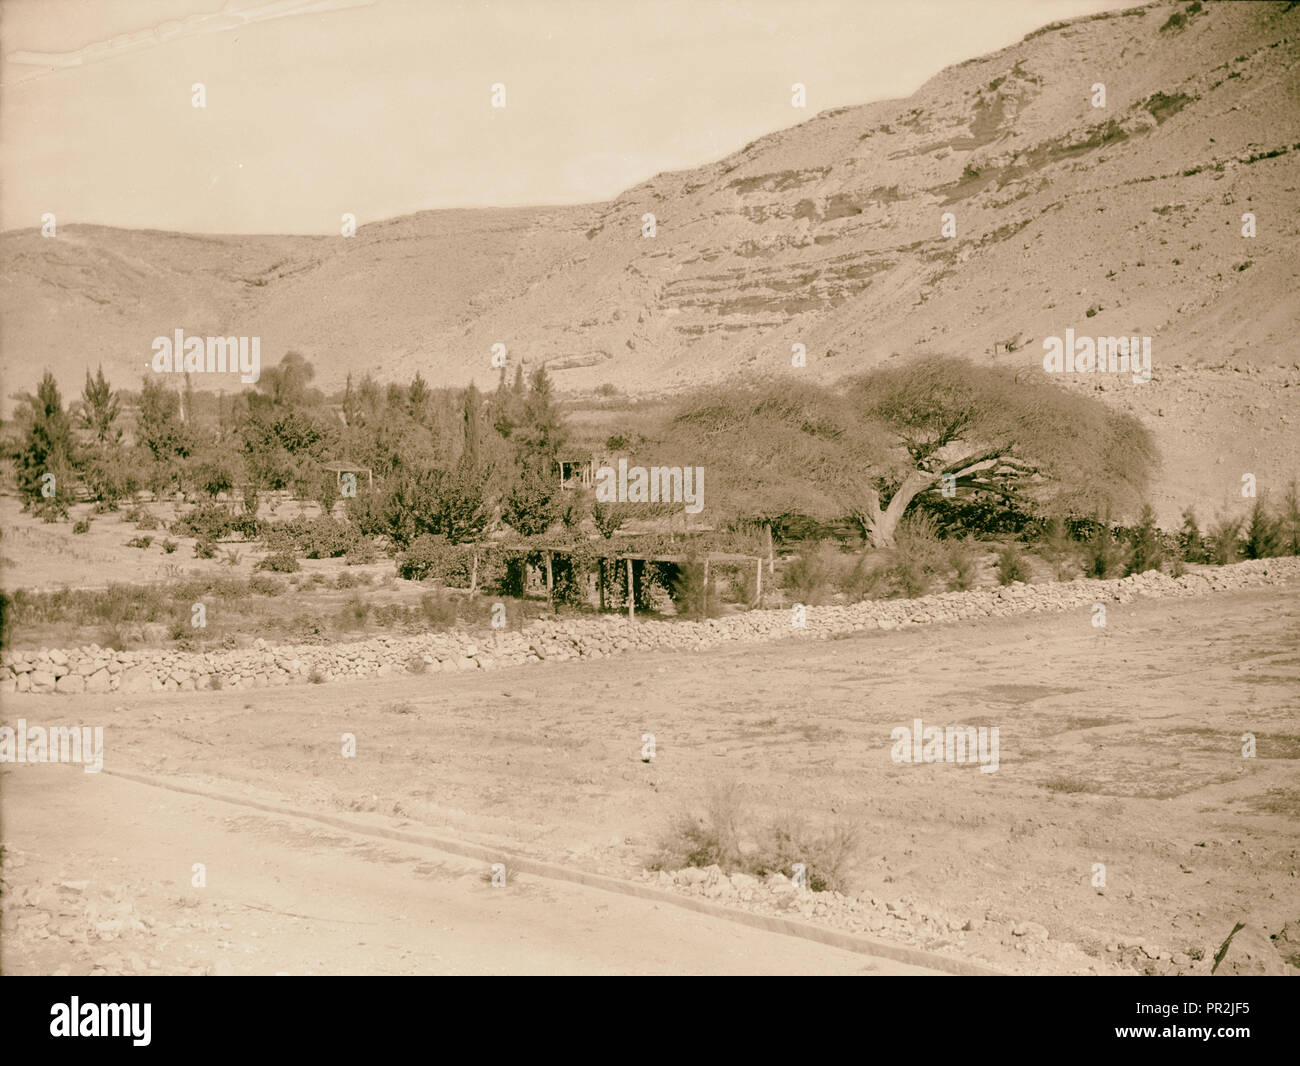 To Sinai by car Ain Gedeirat. Possibly Kadesh Barnea of Num. 328, 1920, Middle East, Israel and/or Palestine - Stock Image